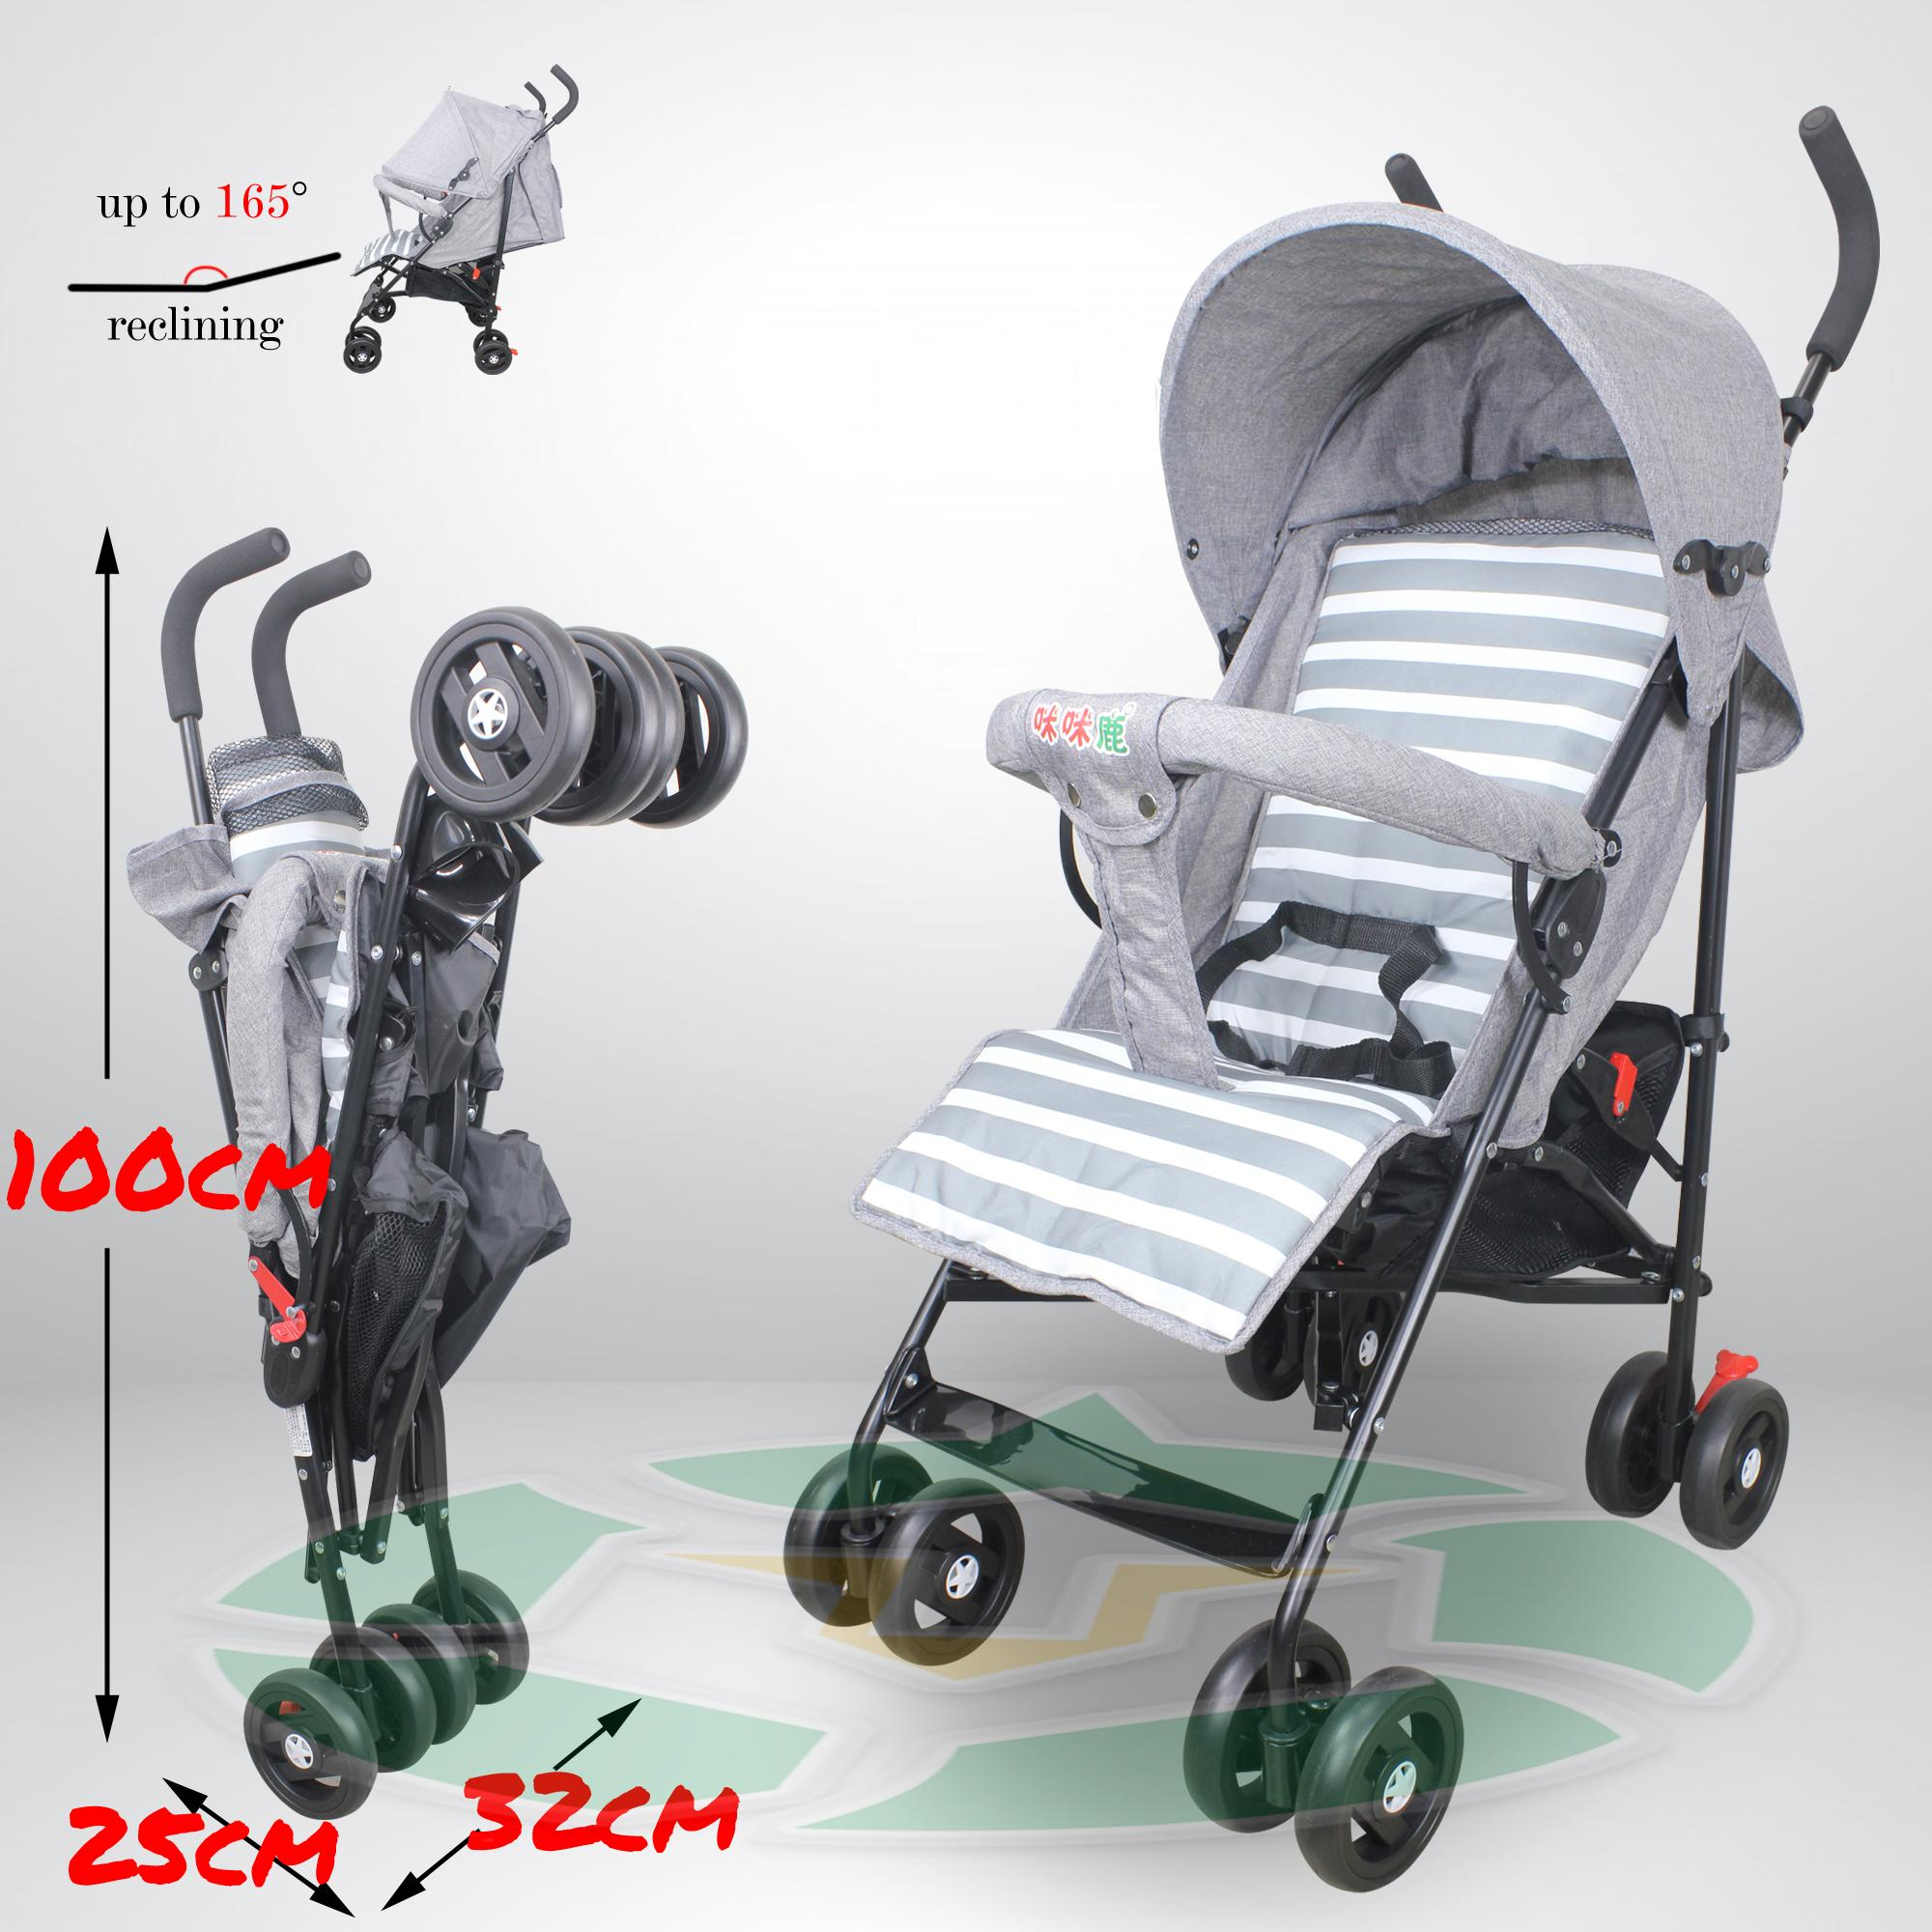 S600 Foldable and Portable Lightweight Umbrella Baby Stroller image